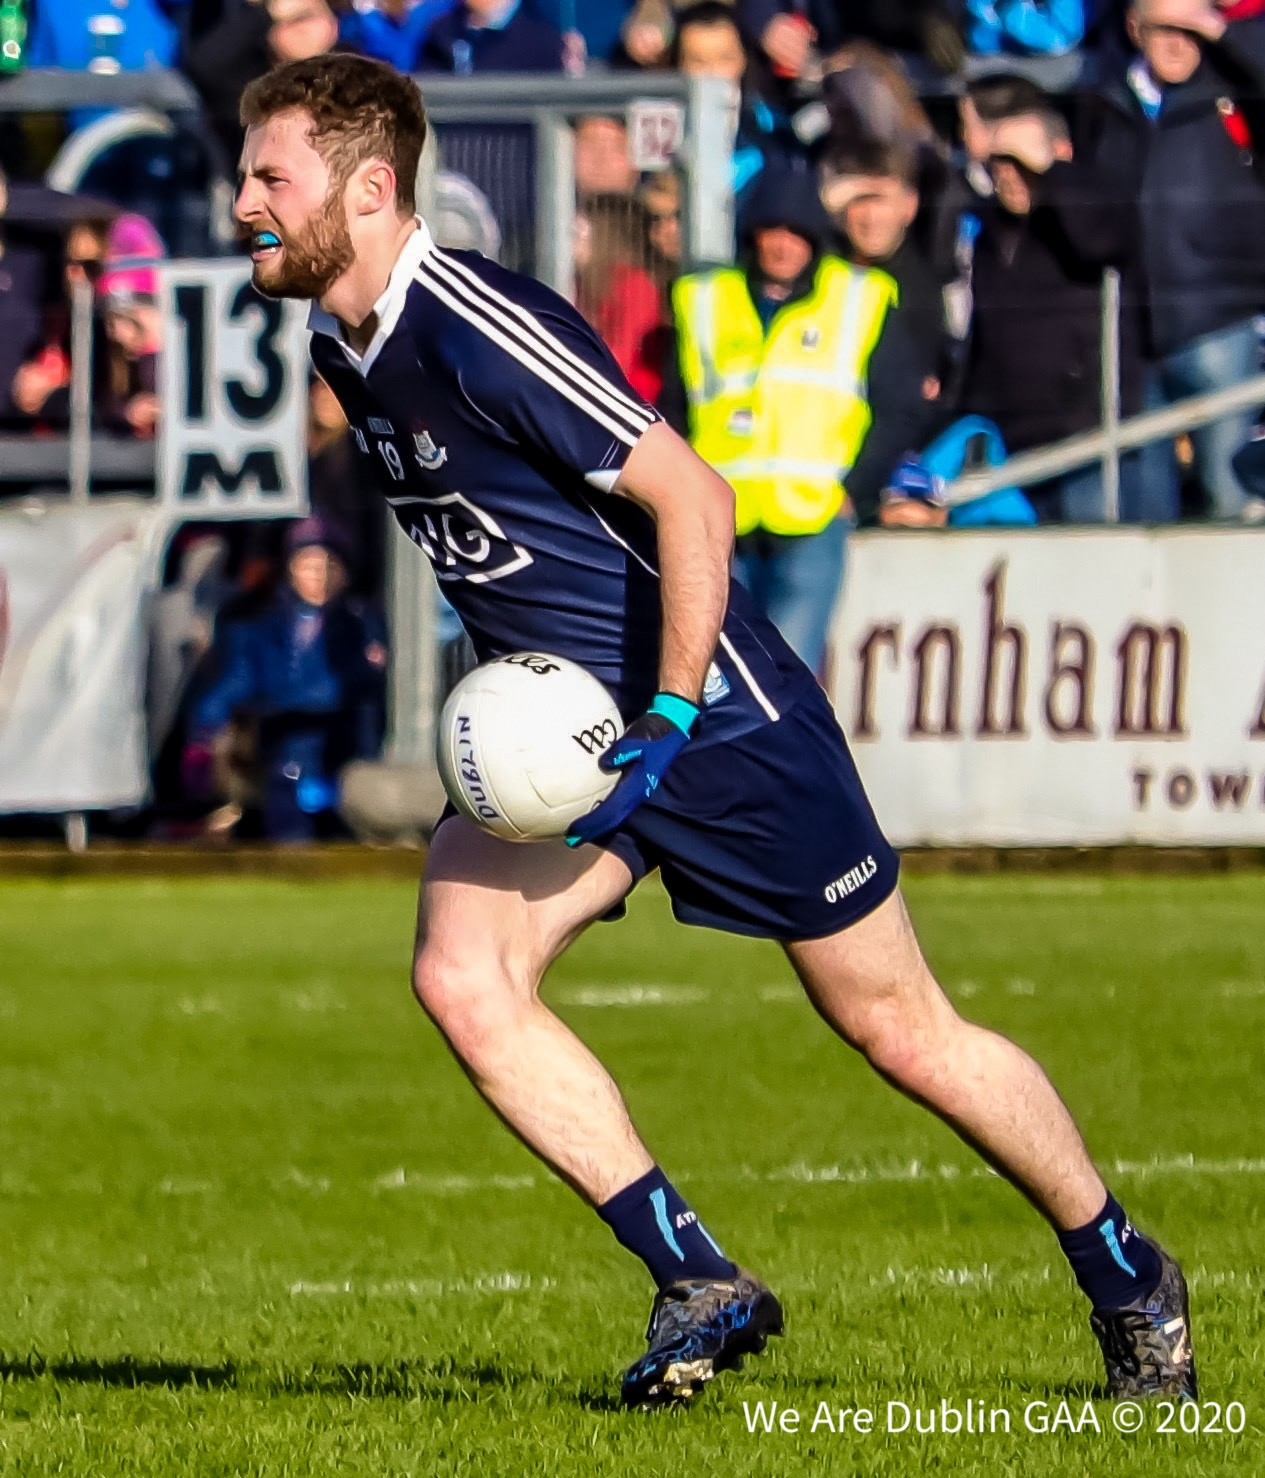 Dublin's Jack McCaffrey has opted out of the Dublin panel for 2020